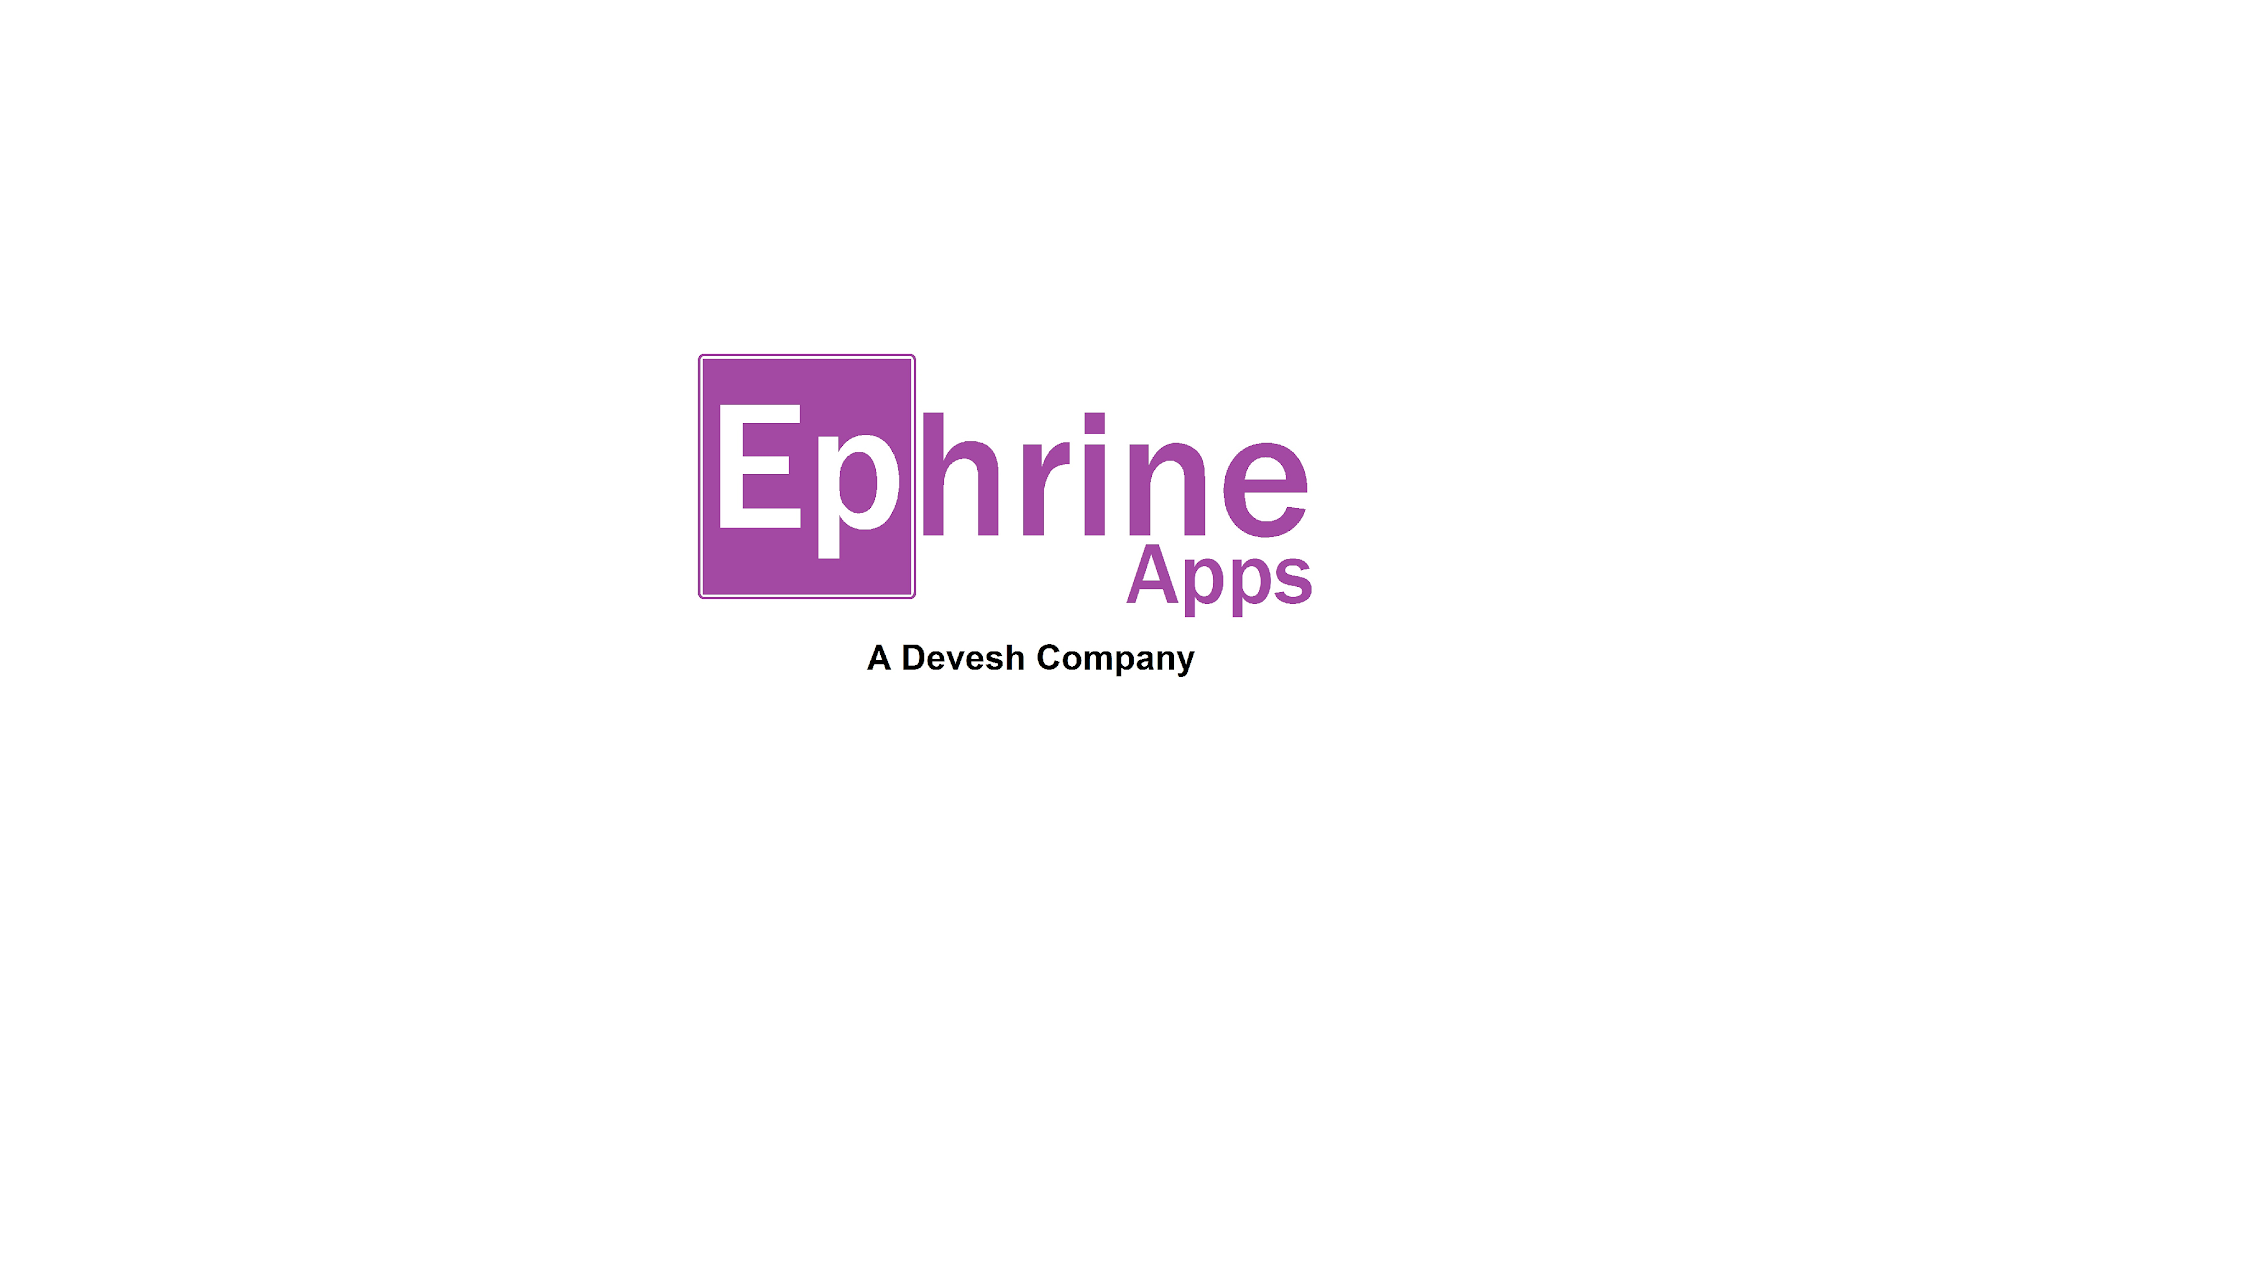 Ephrine Apps Powered by Devesh